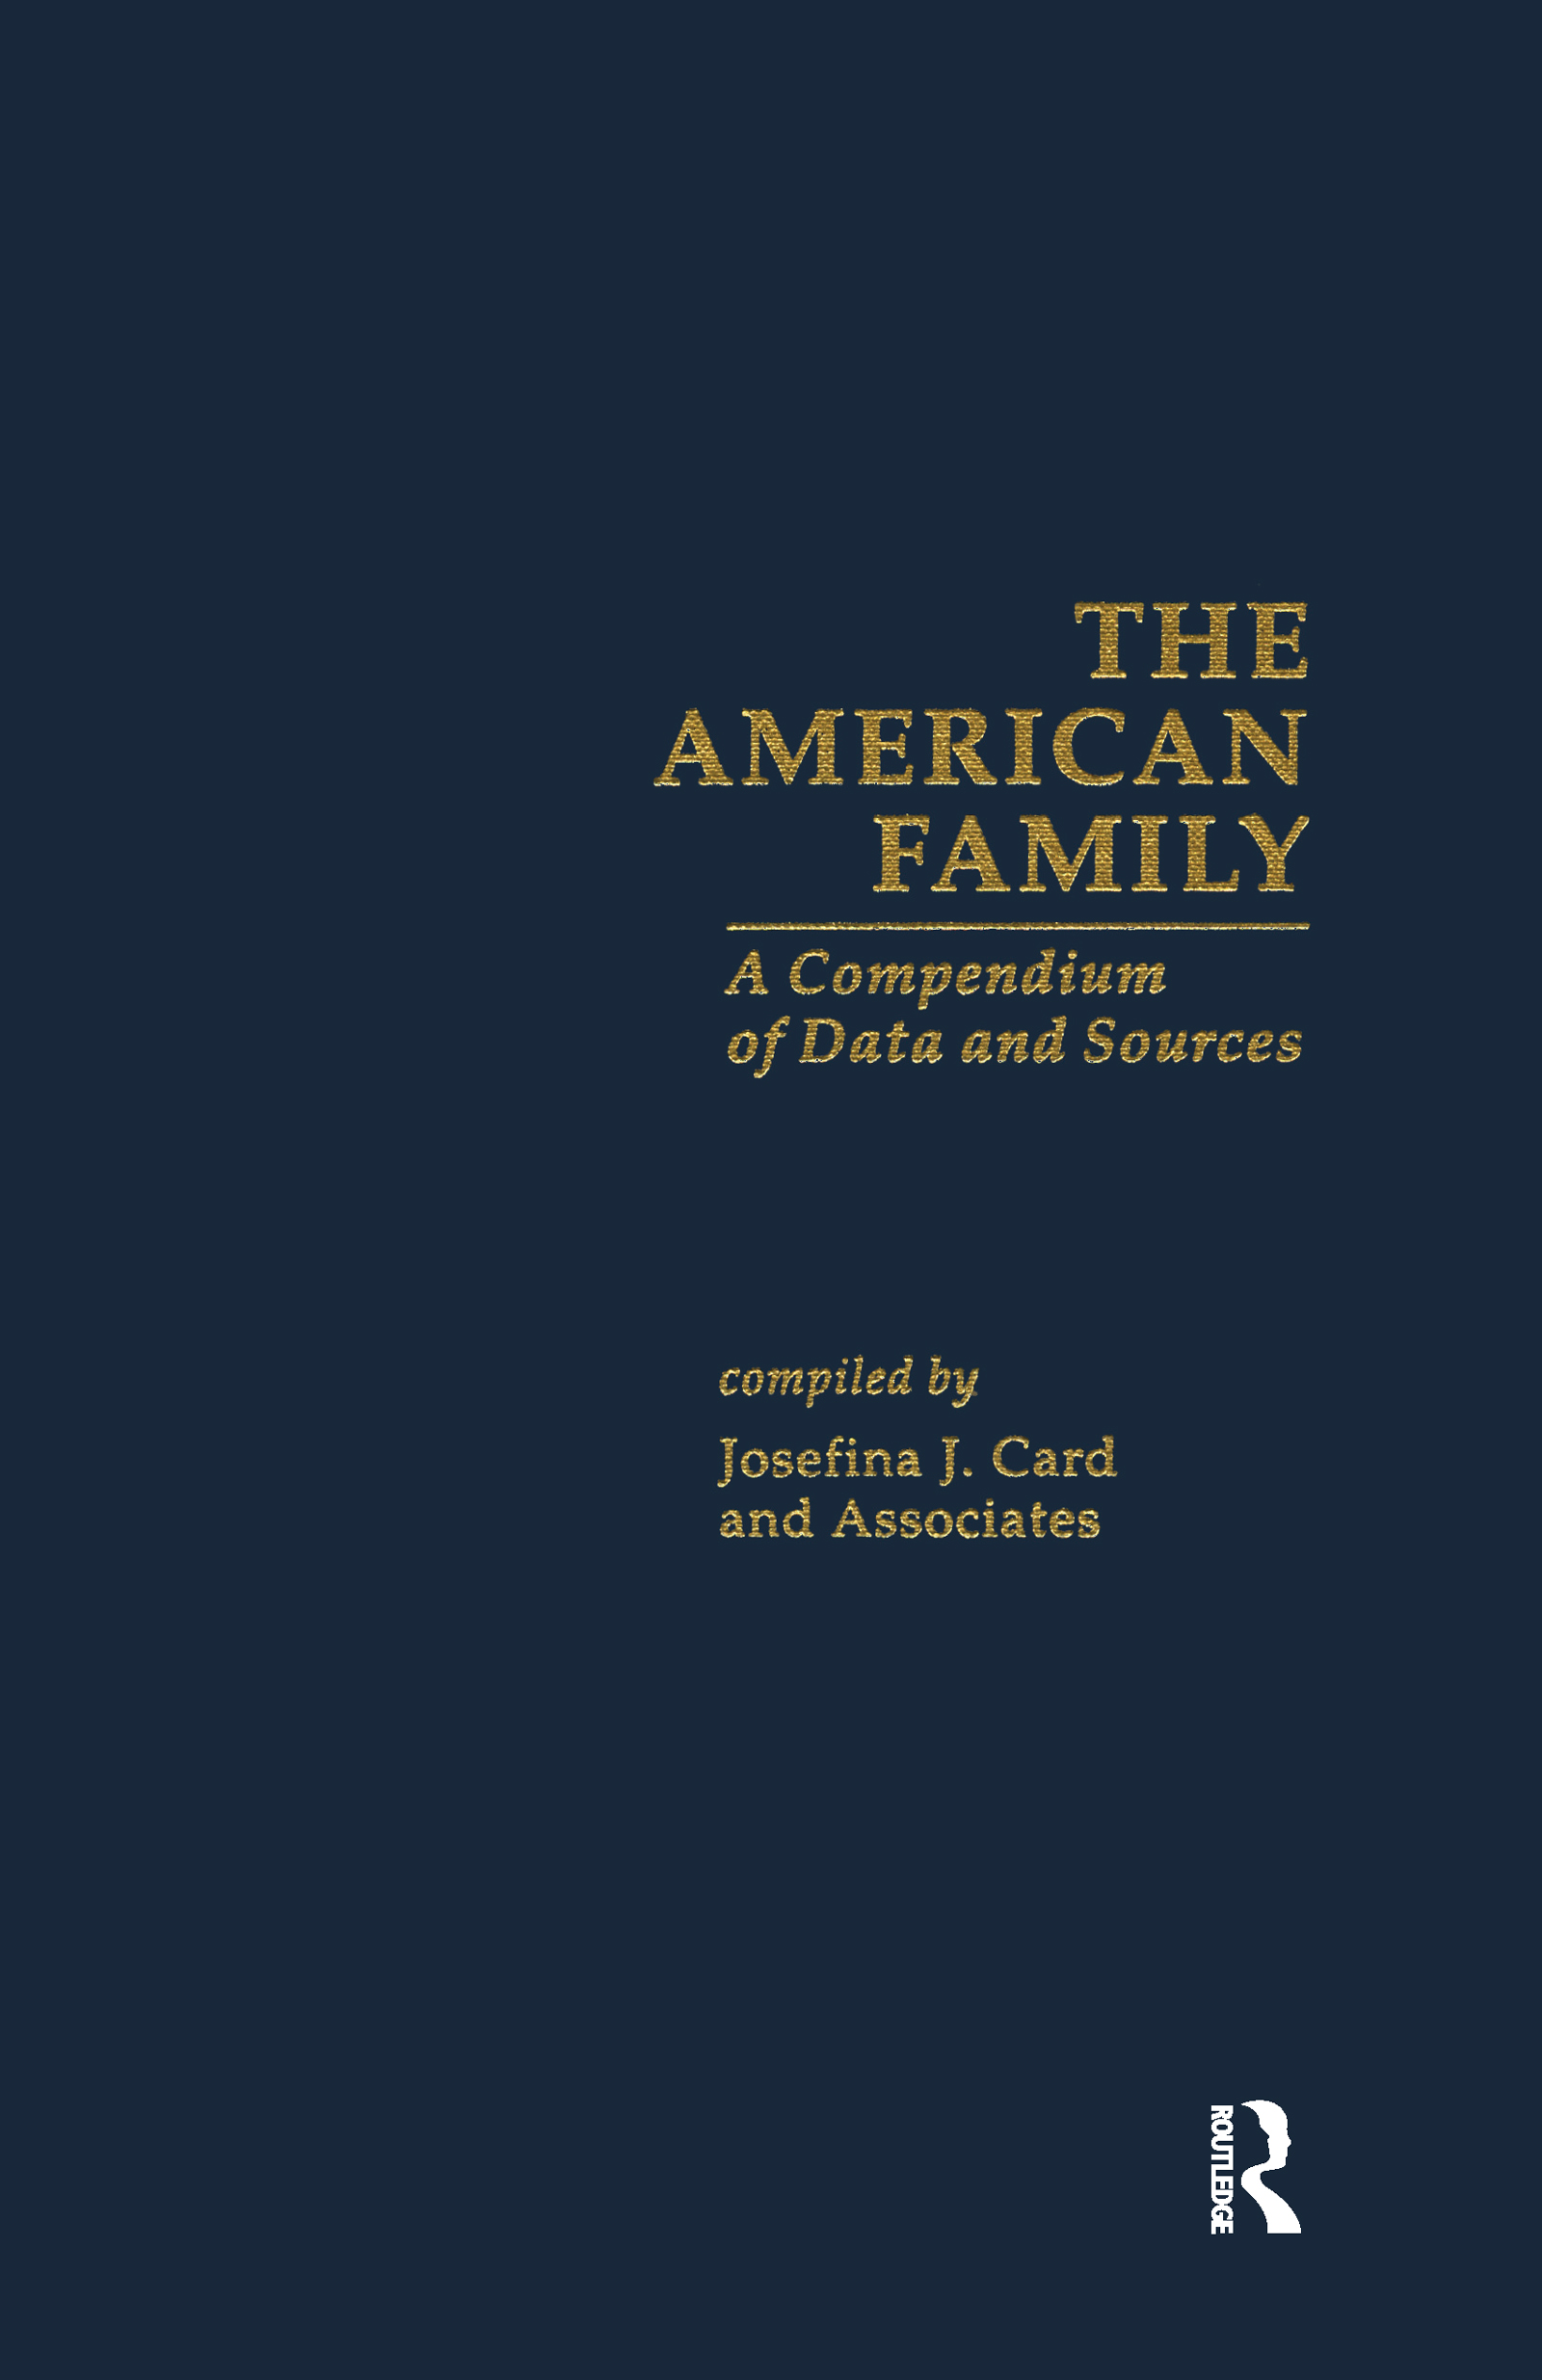 The American Family: A Compendium of Data and Sources book cover